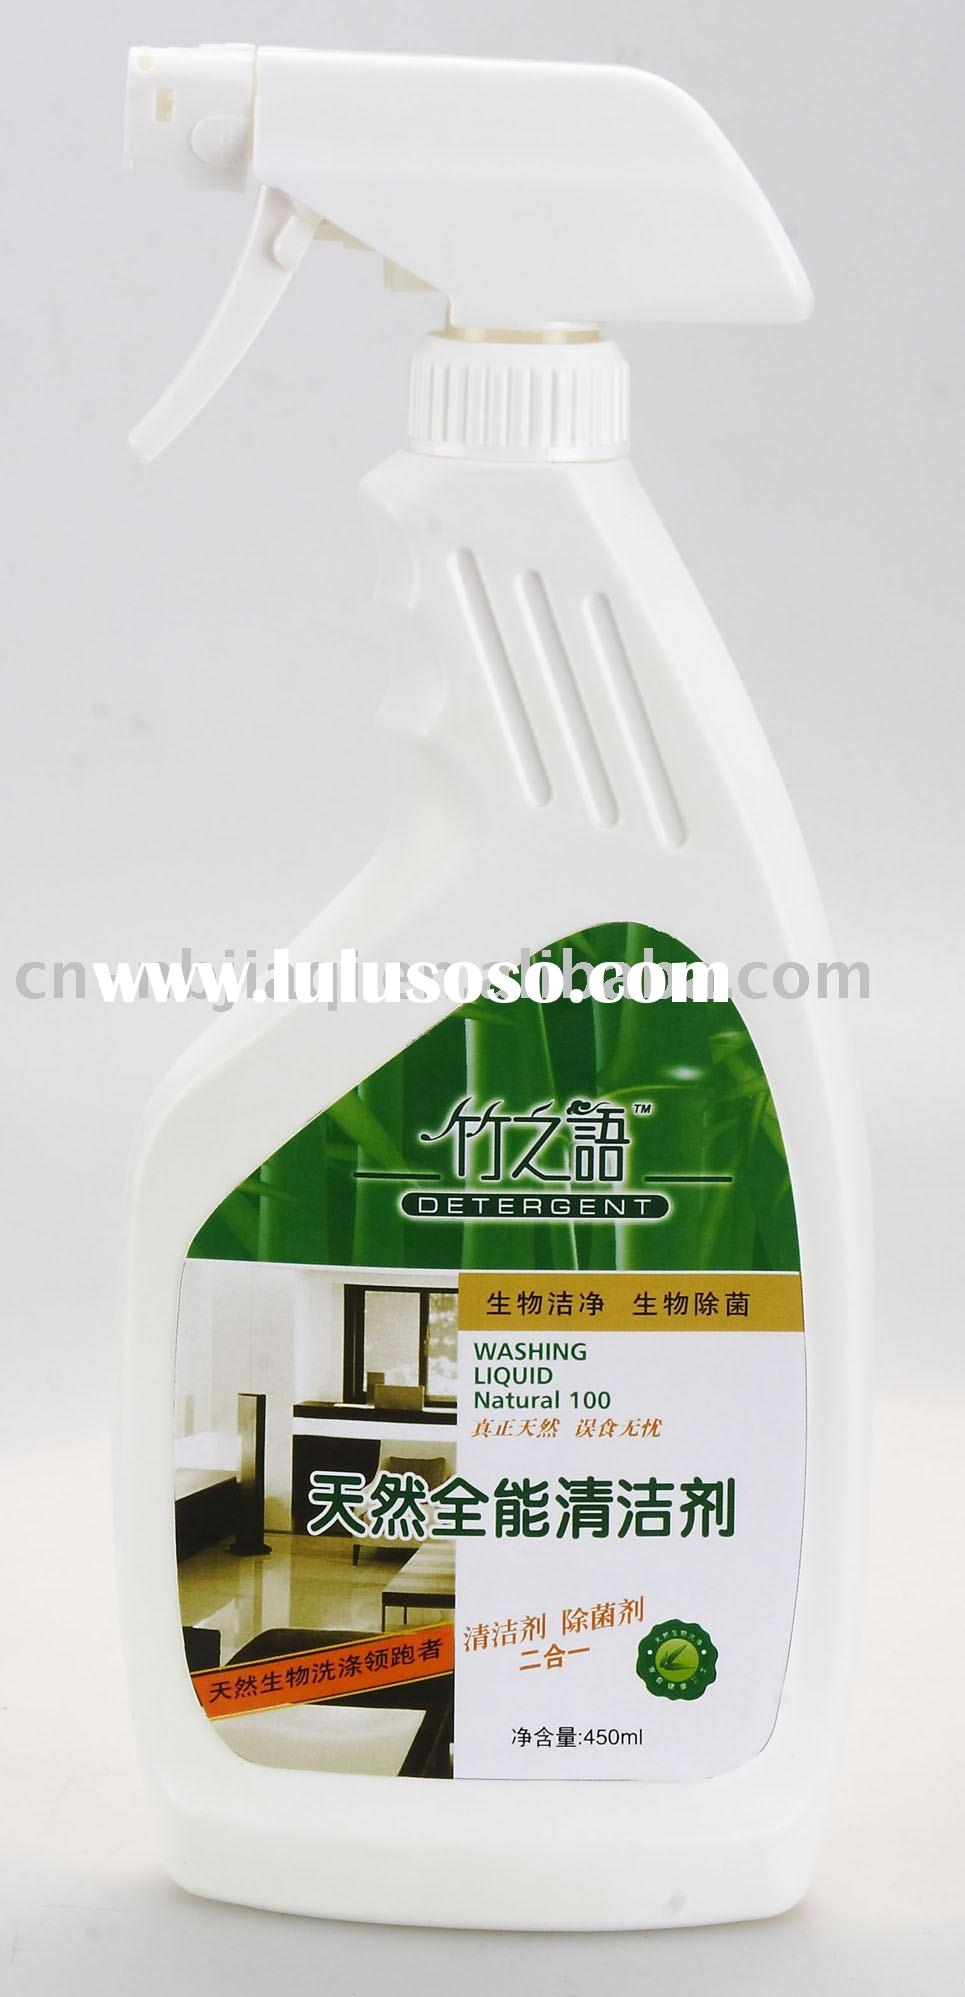 NATURAL MULTIFUNCTIONAL CLEANING DETERGENT